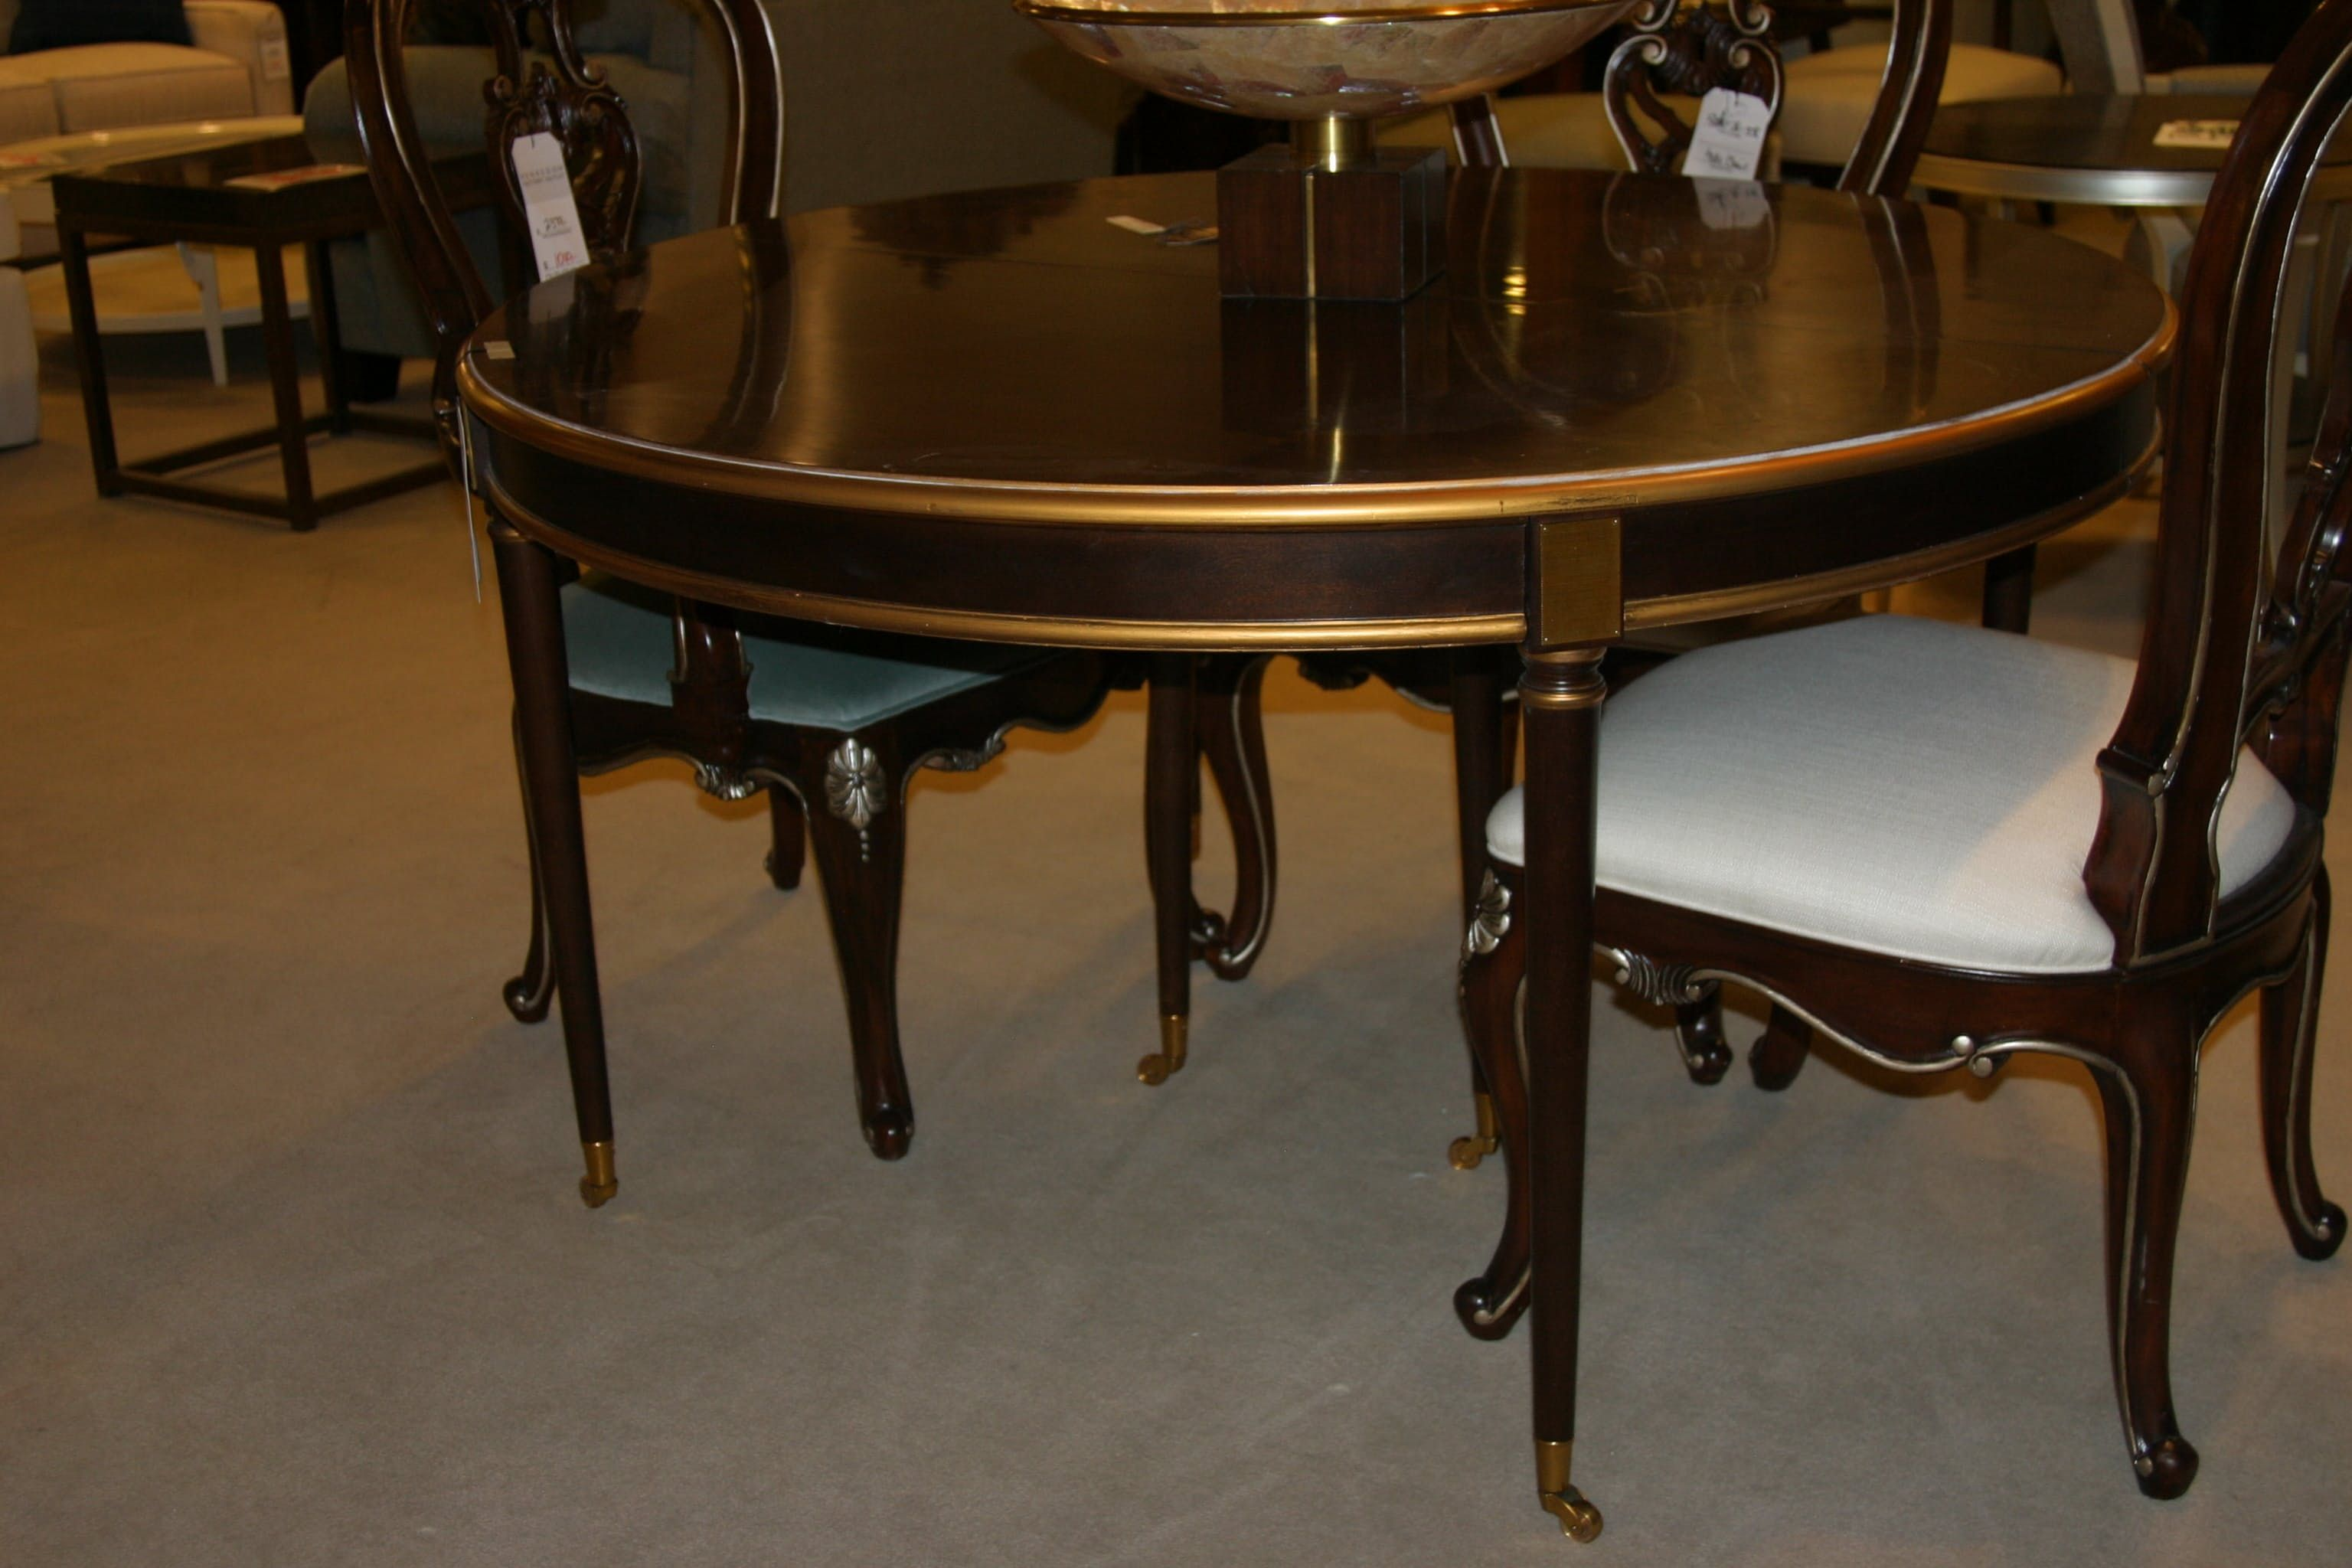 Hickory Chair Choate dining table Hickory chair, Dining